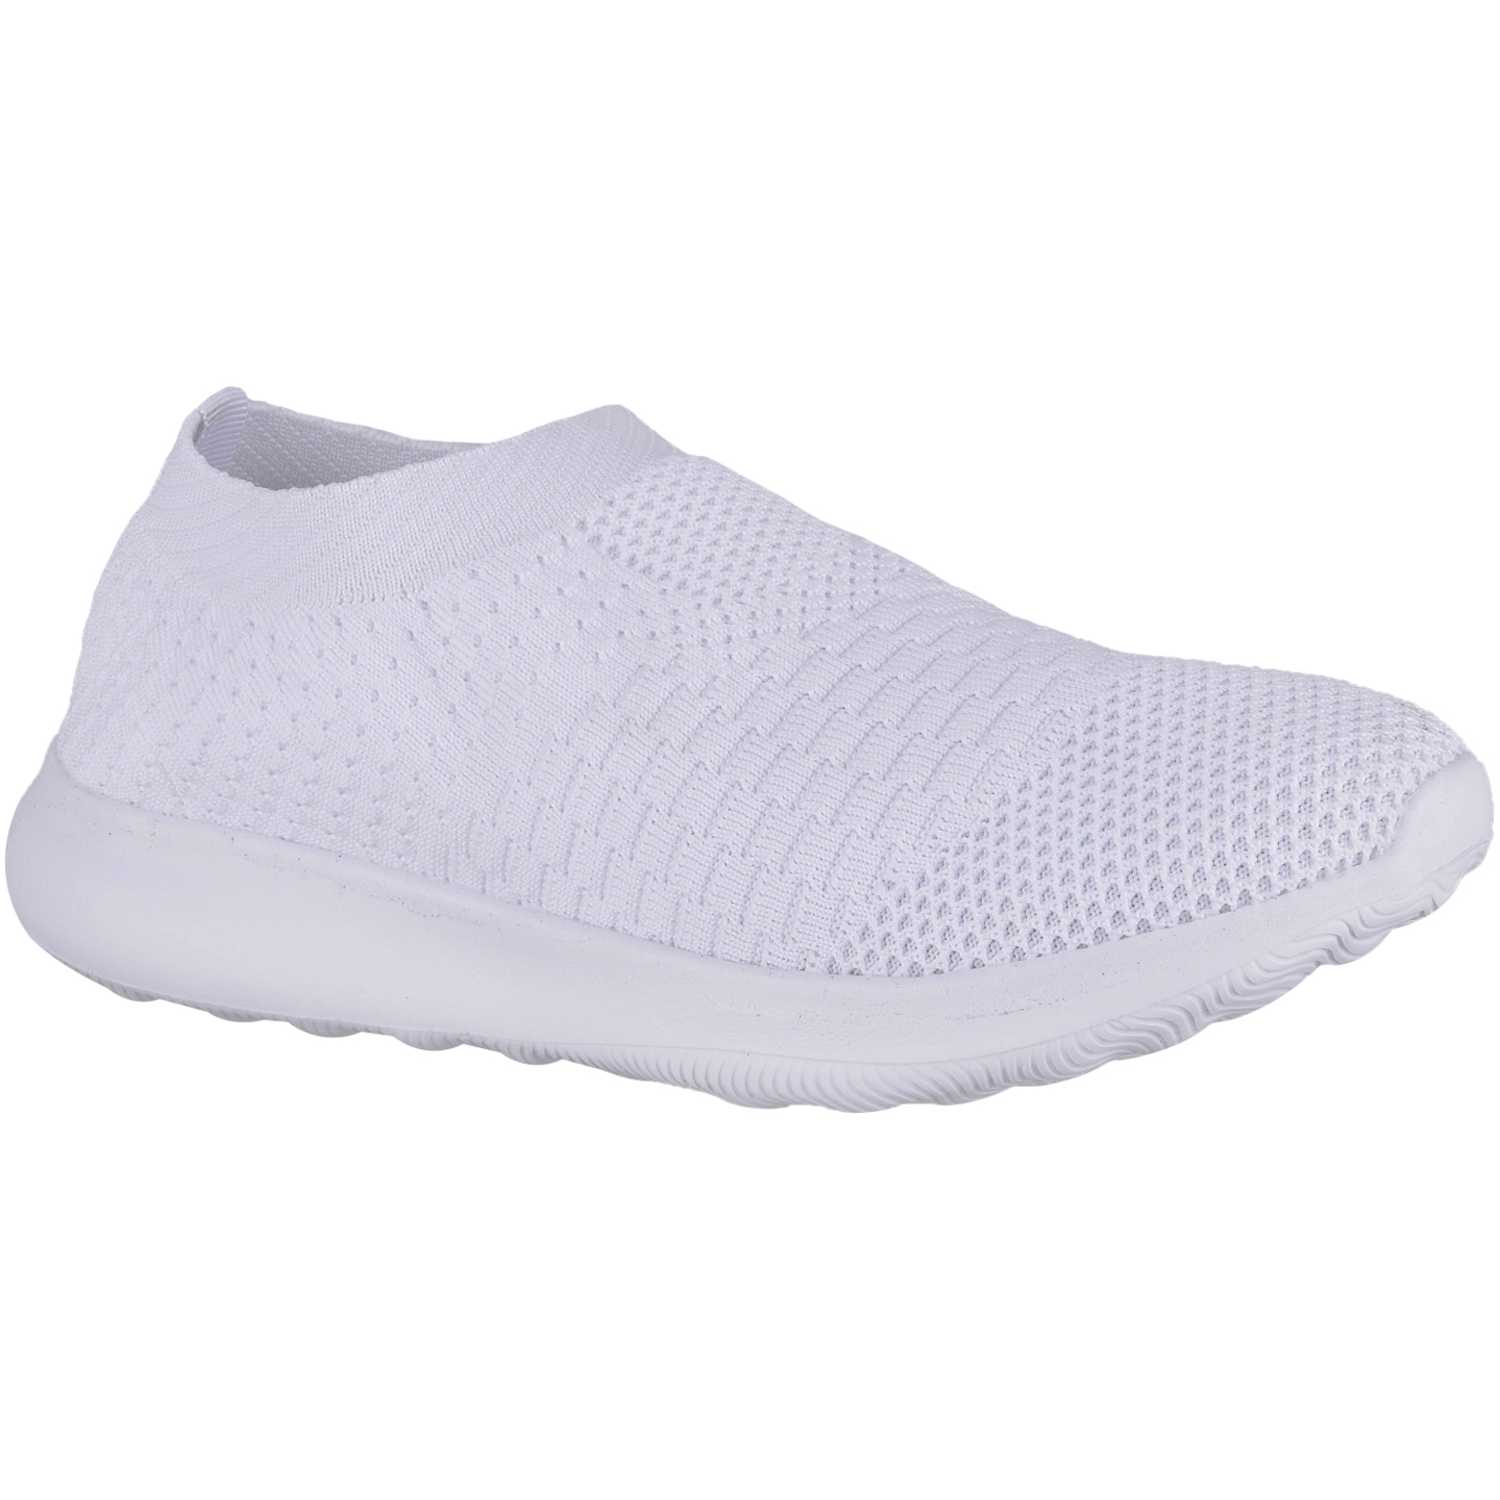 Platanitos z 708 Blanco Zapatillas Fashion